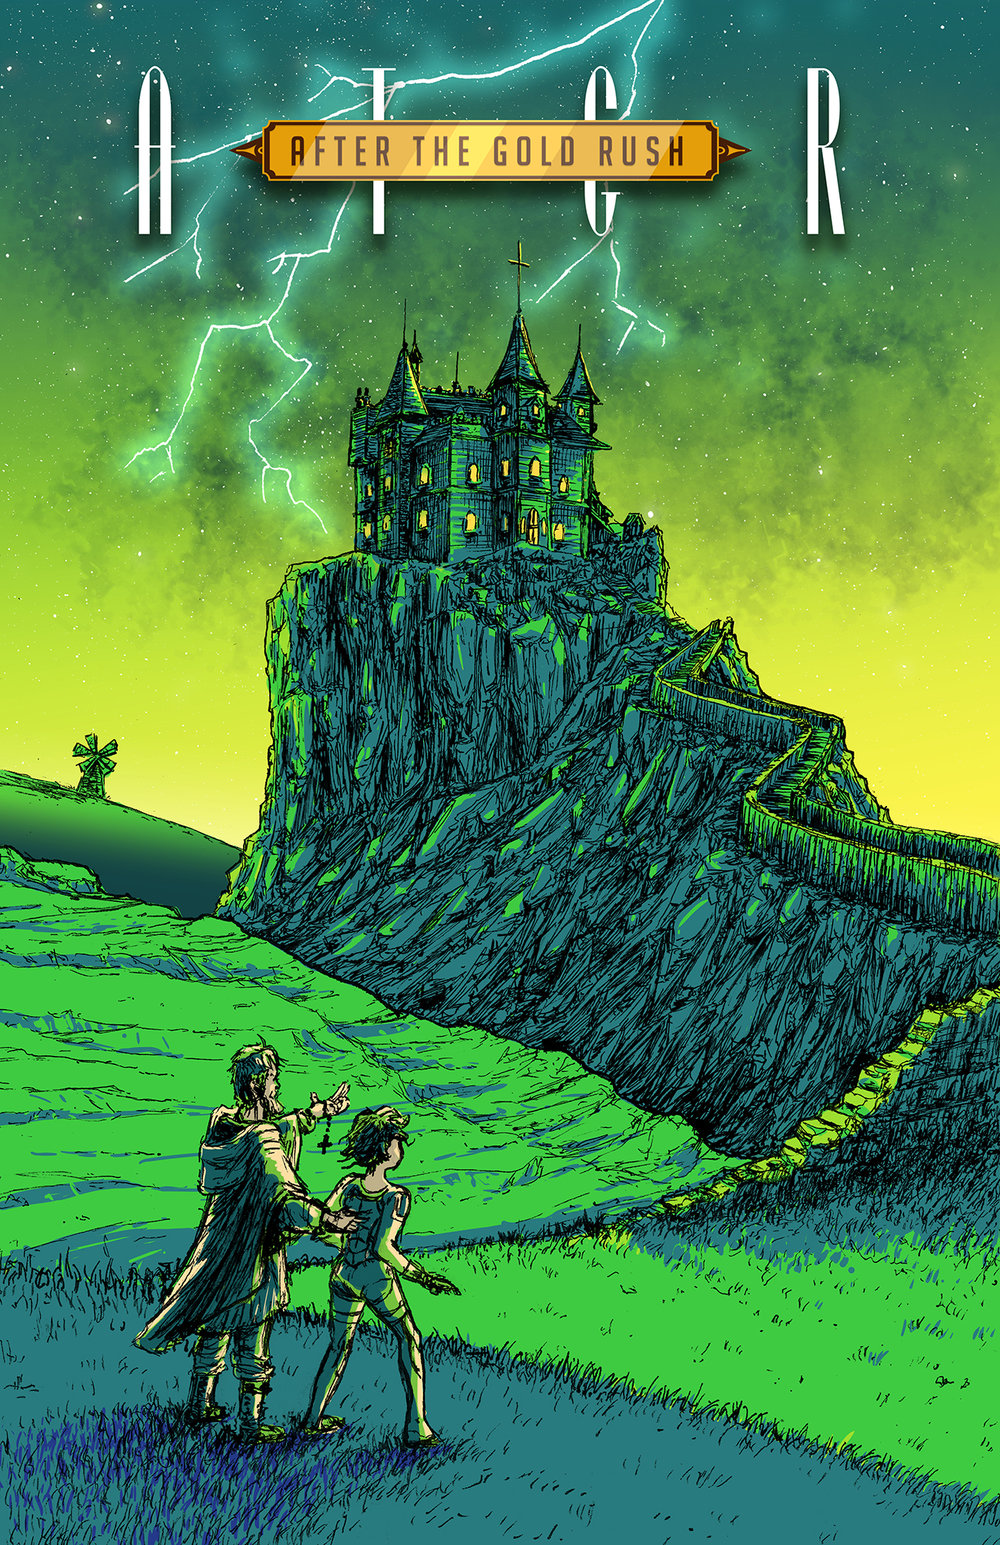 atgr_comic_cover_green4.jpg